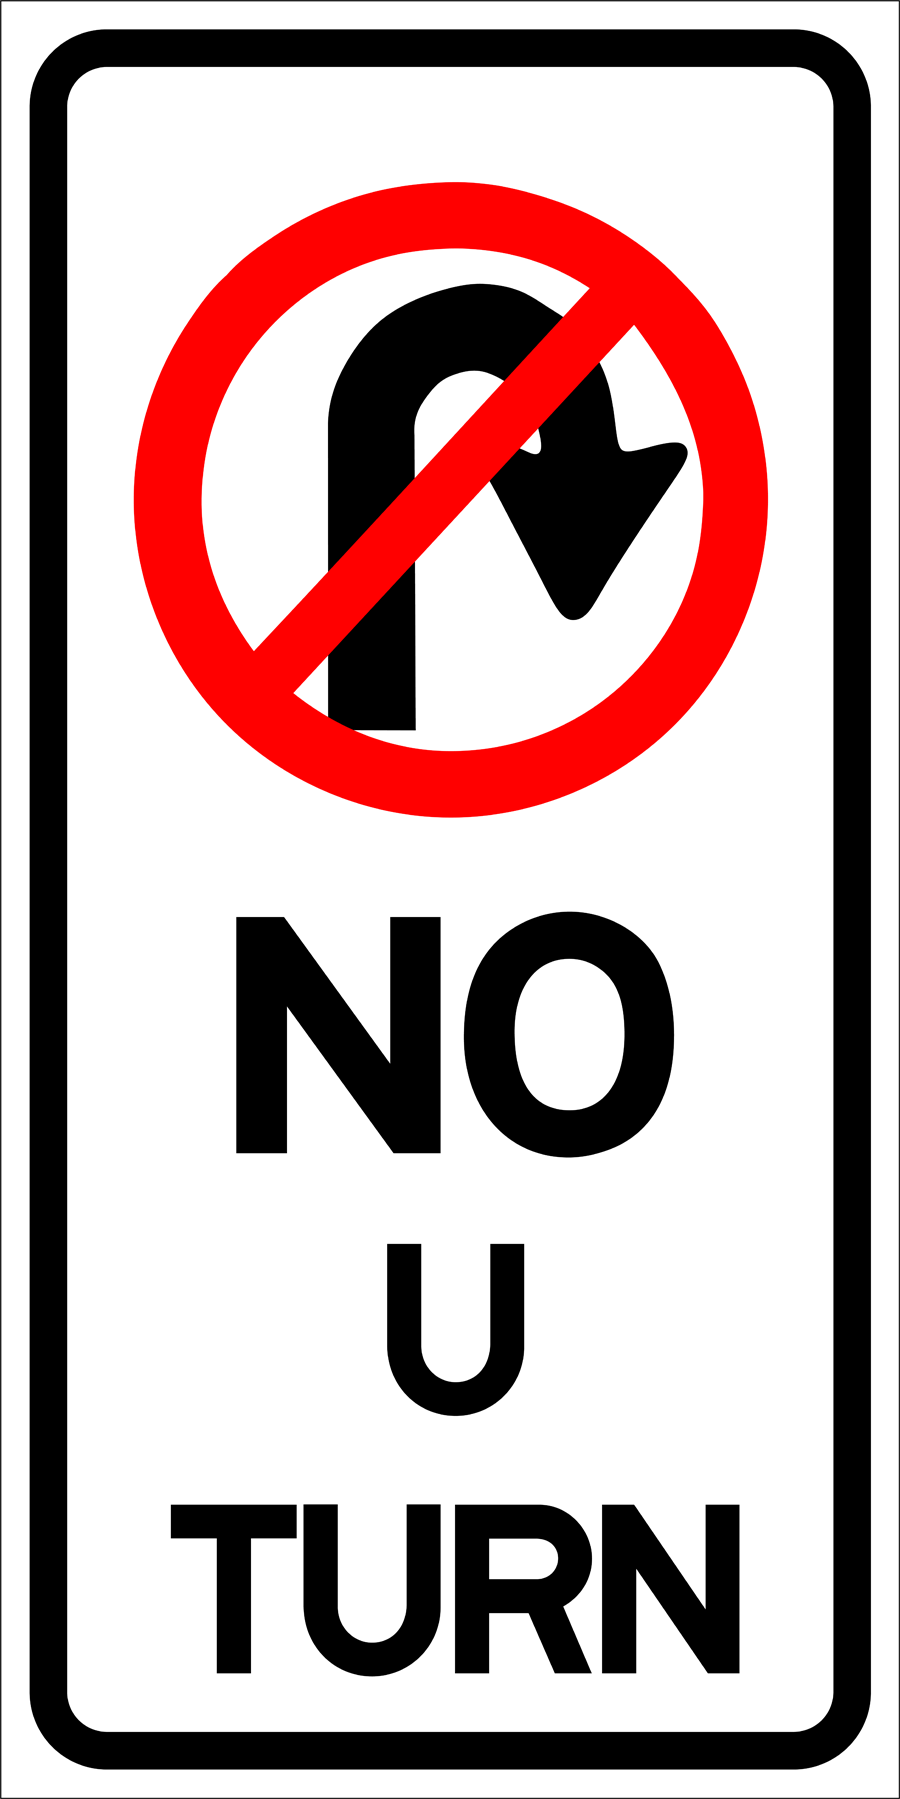 Traffic Signs - No U Turn